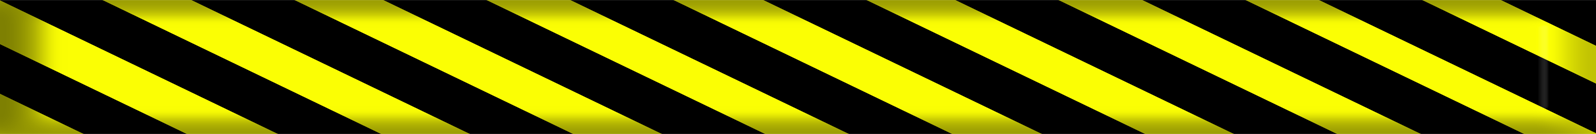 Caution Tape copy.png